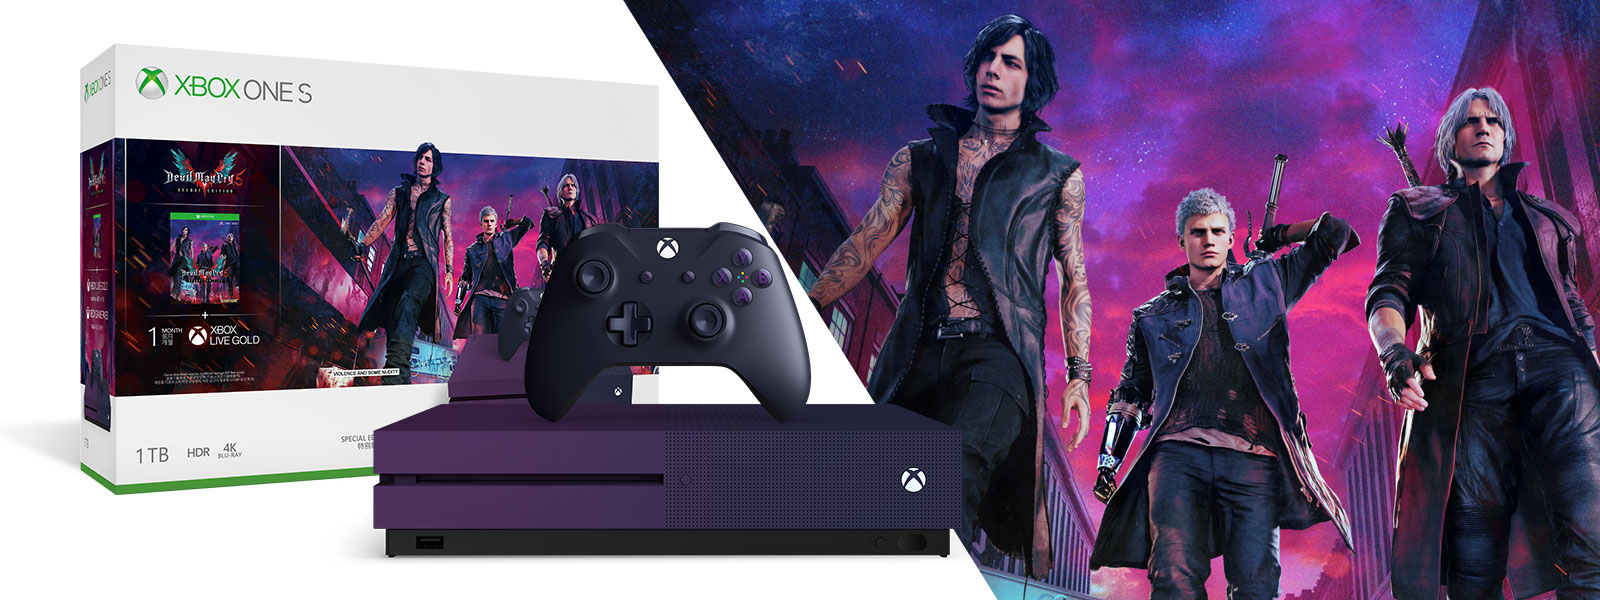 Devil May Cry bundle box and purple console with controller with front view of demon hunters Nero, Dante and V